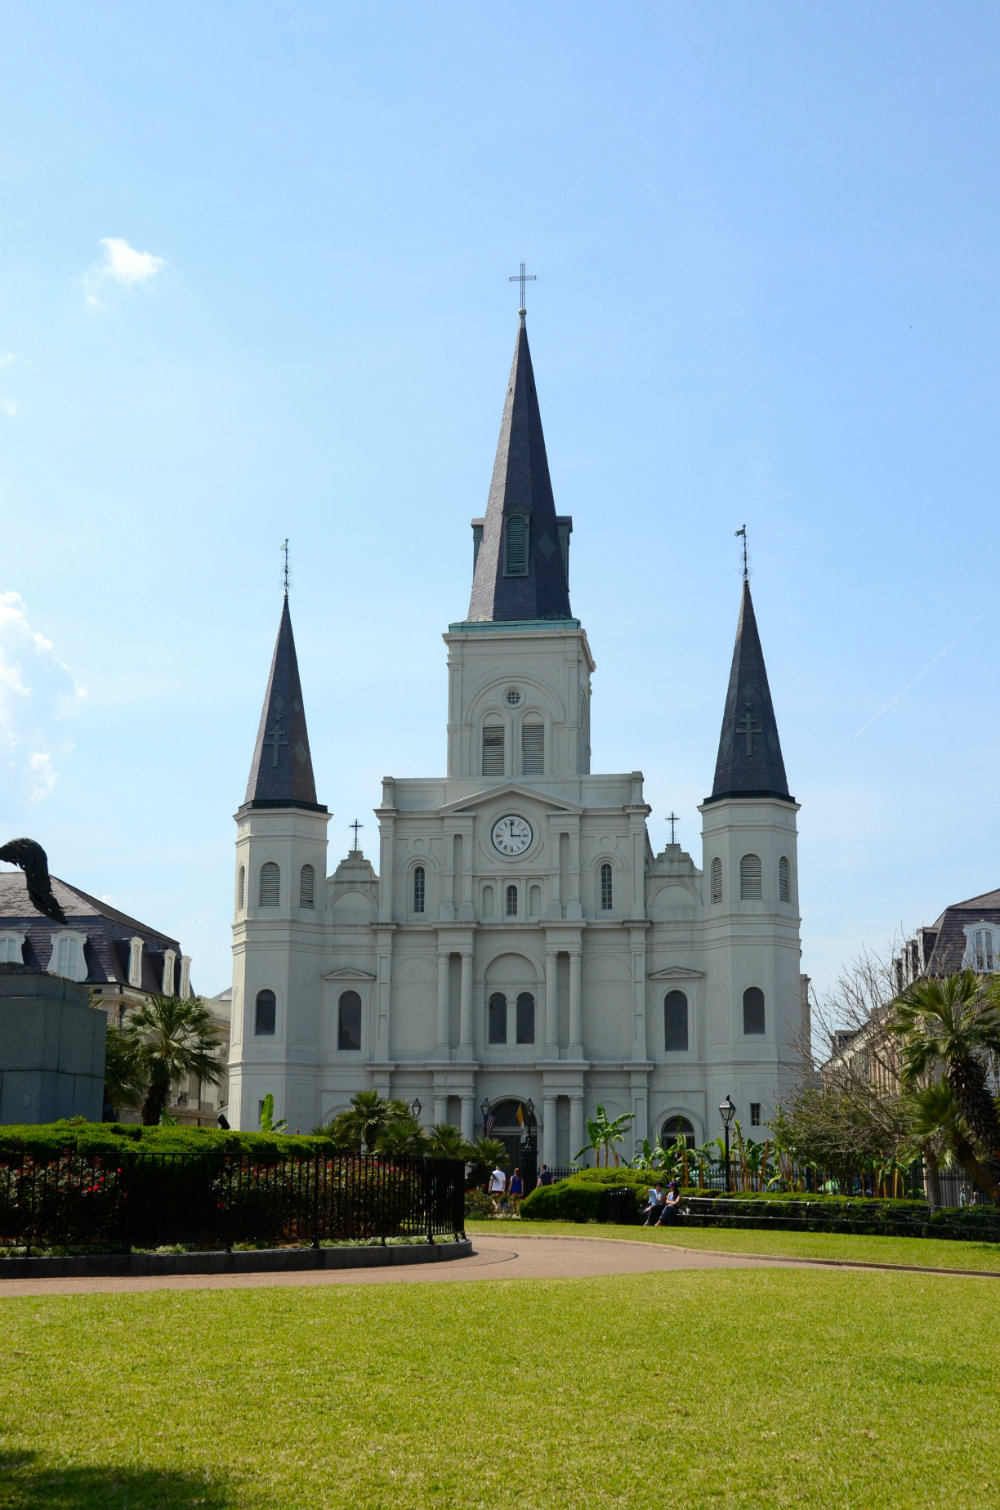 Kids admiring St. Louis Cathedral in New Orleans